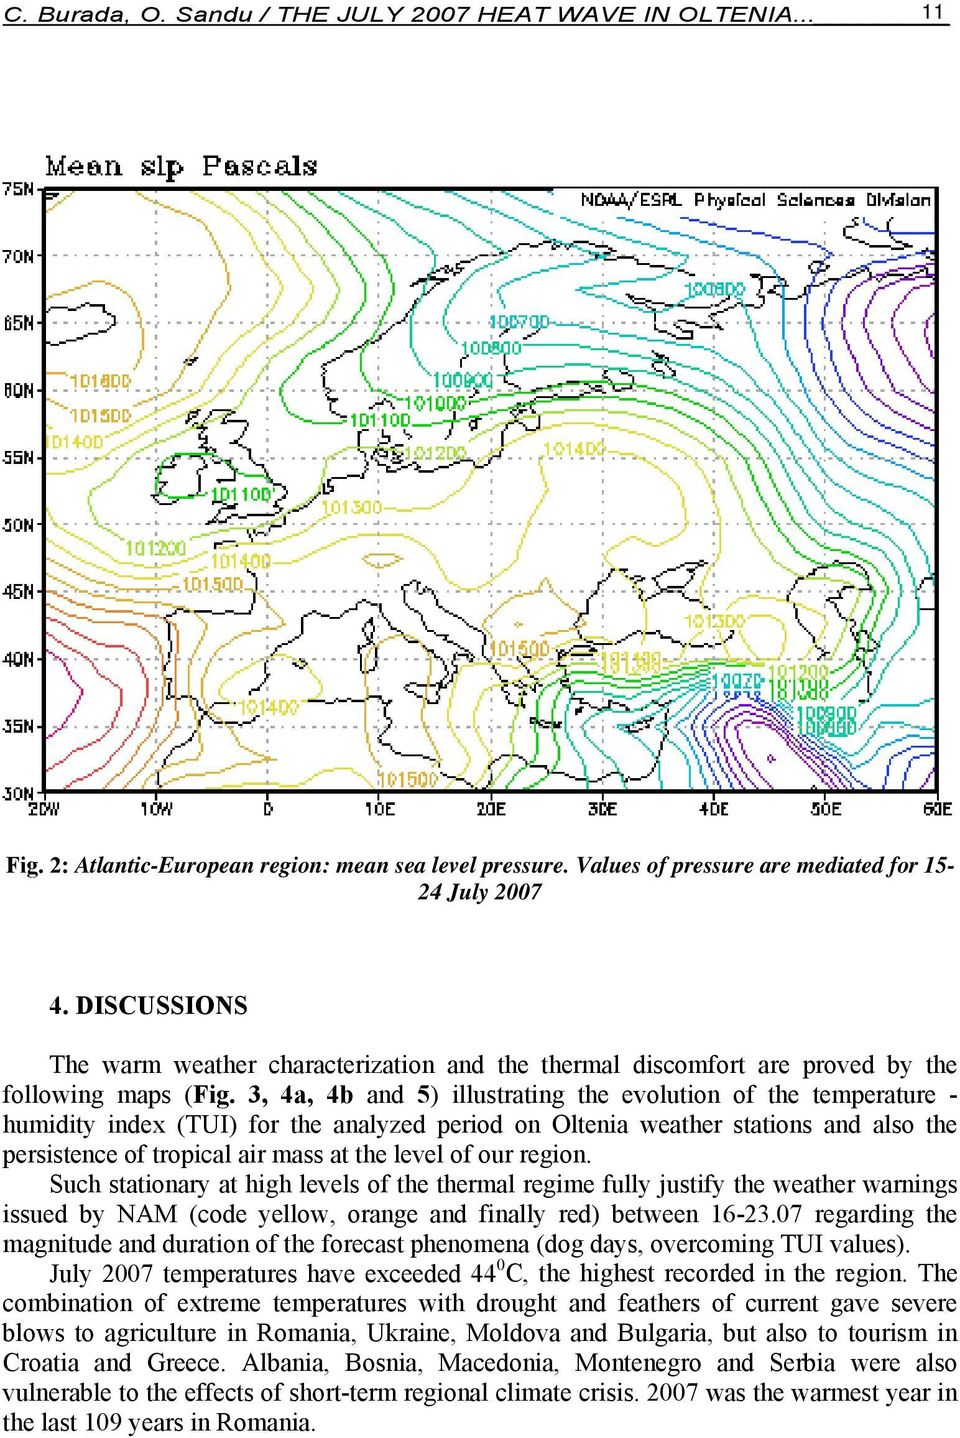 3, 4a, 4b and 5) illustrating the evolution of the temperature - humidity index (TUI) for the analyzed period on Oltenia weather stations and also the persistence of tropical air mass at the level of